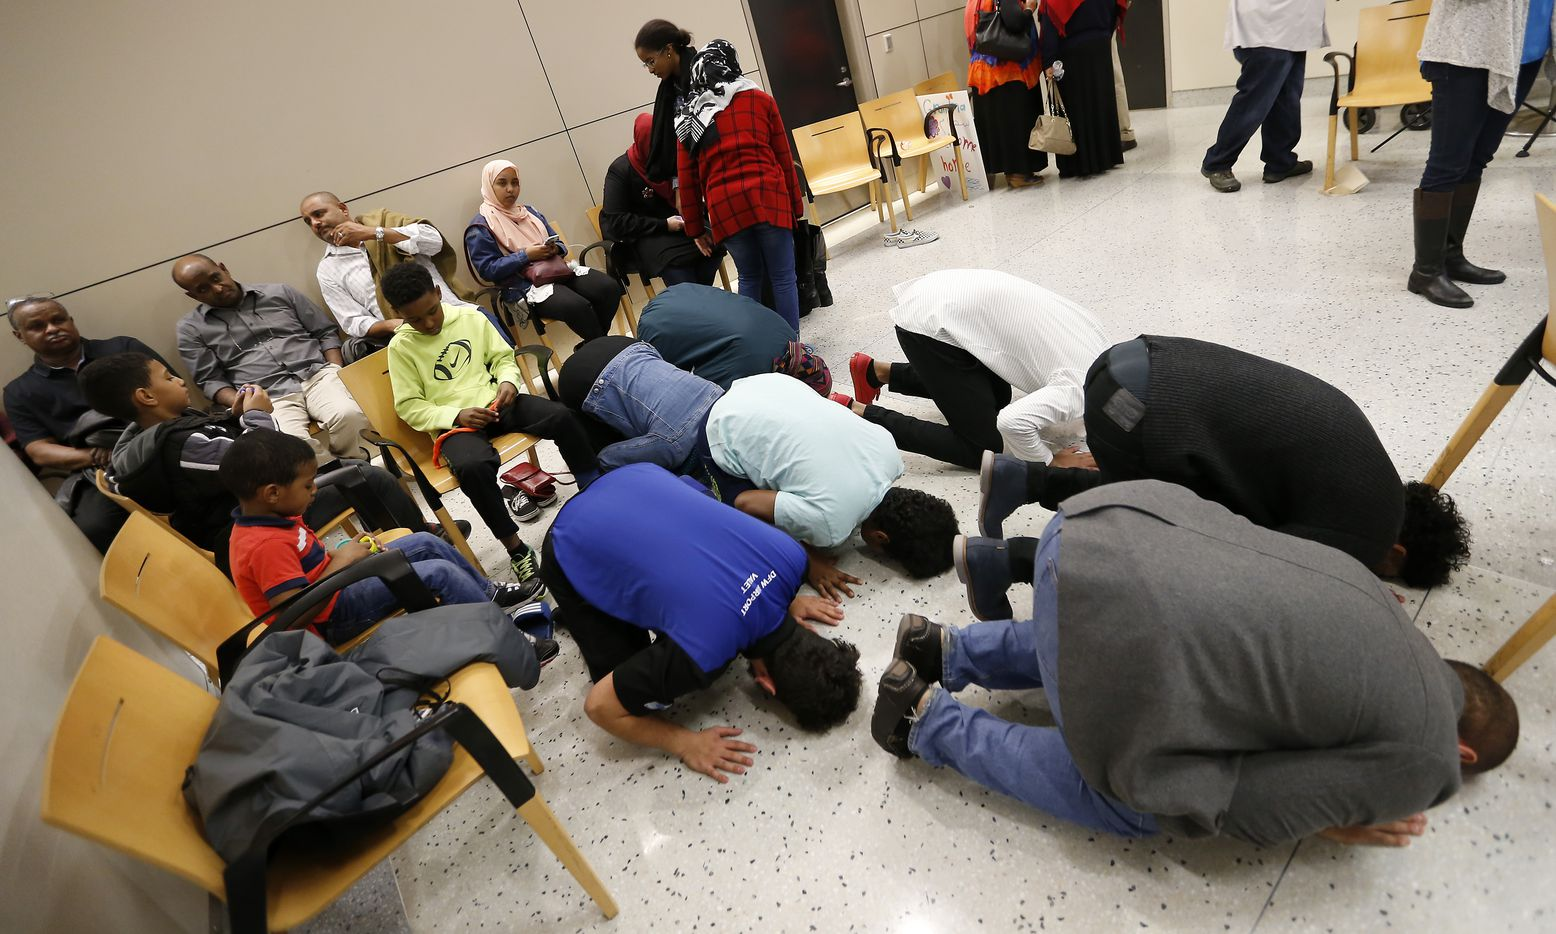 People pray at the international arrives at Dallas/Fort Worth International Airport in Dallas, Saturday, Jan. 28, 2017.